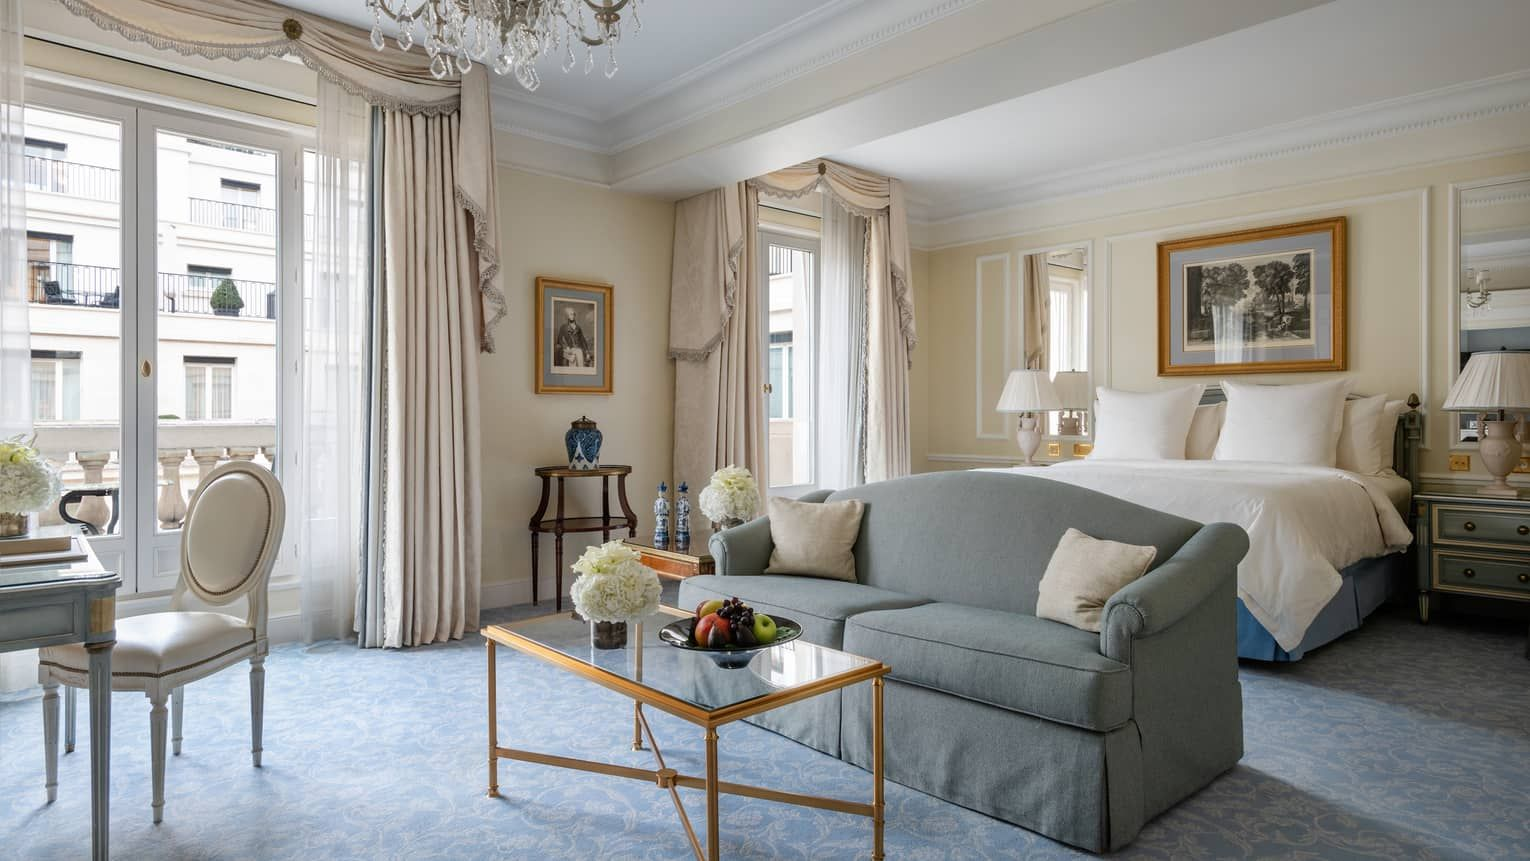 Luxury Hotel Paris 5 Star Four Seasons Hotel George V Paris